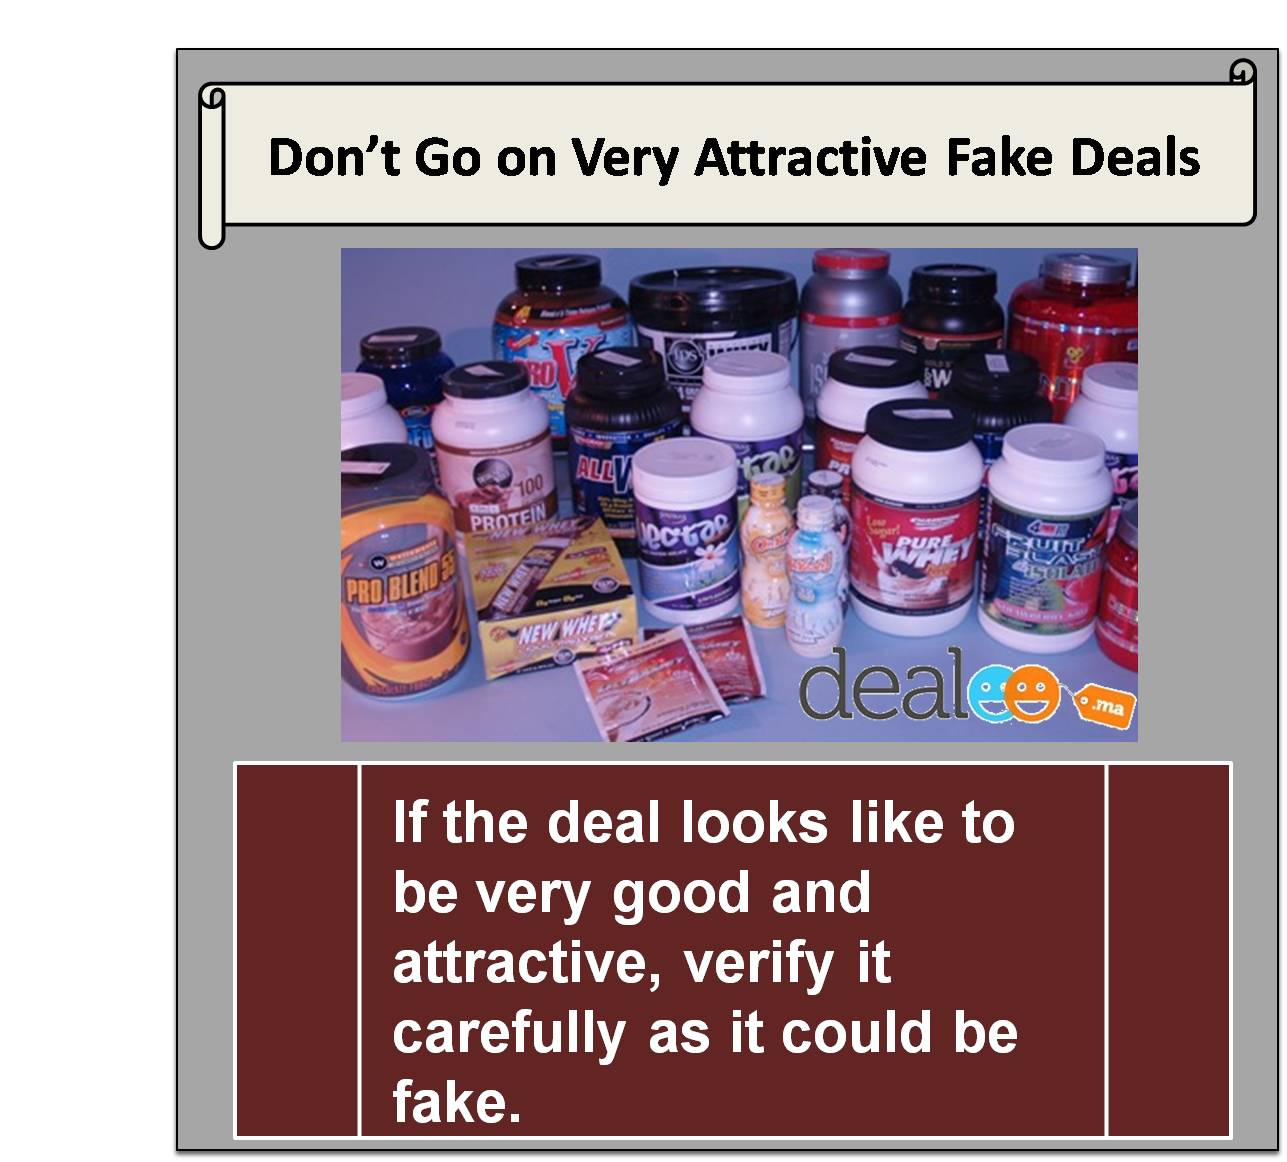 Don't go on very attractive fake deals